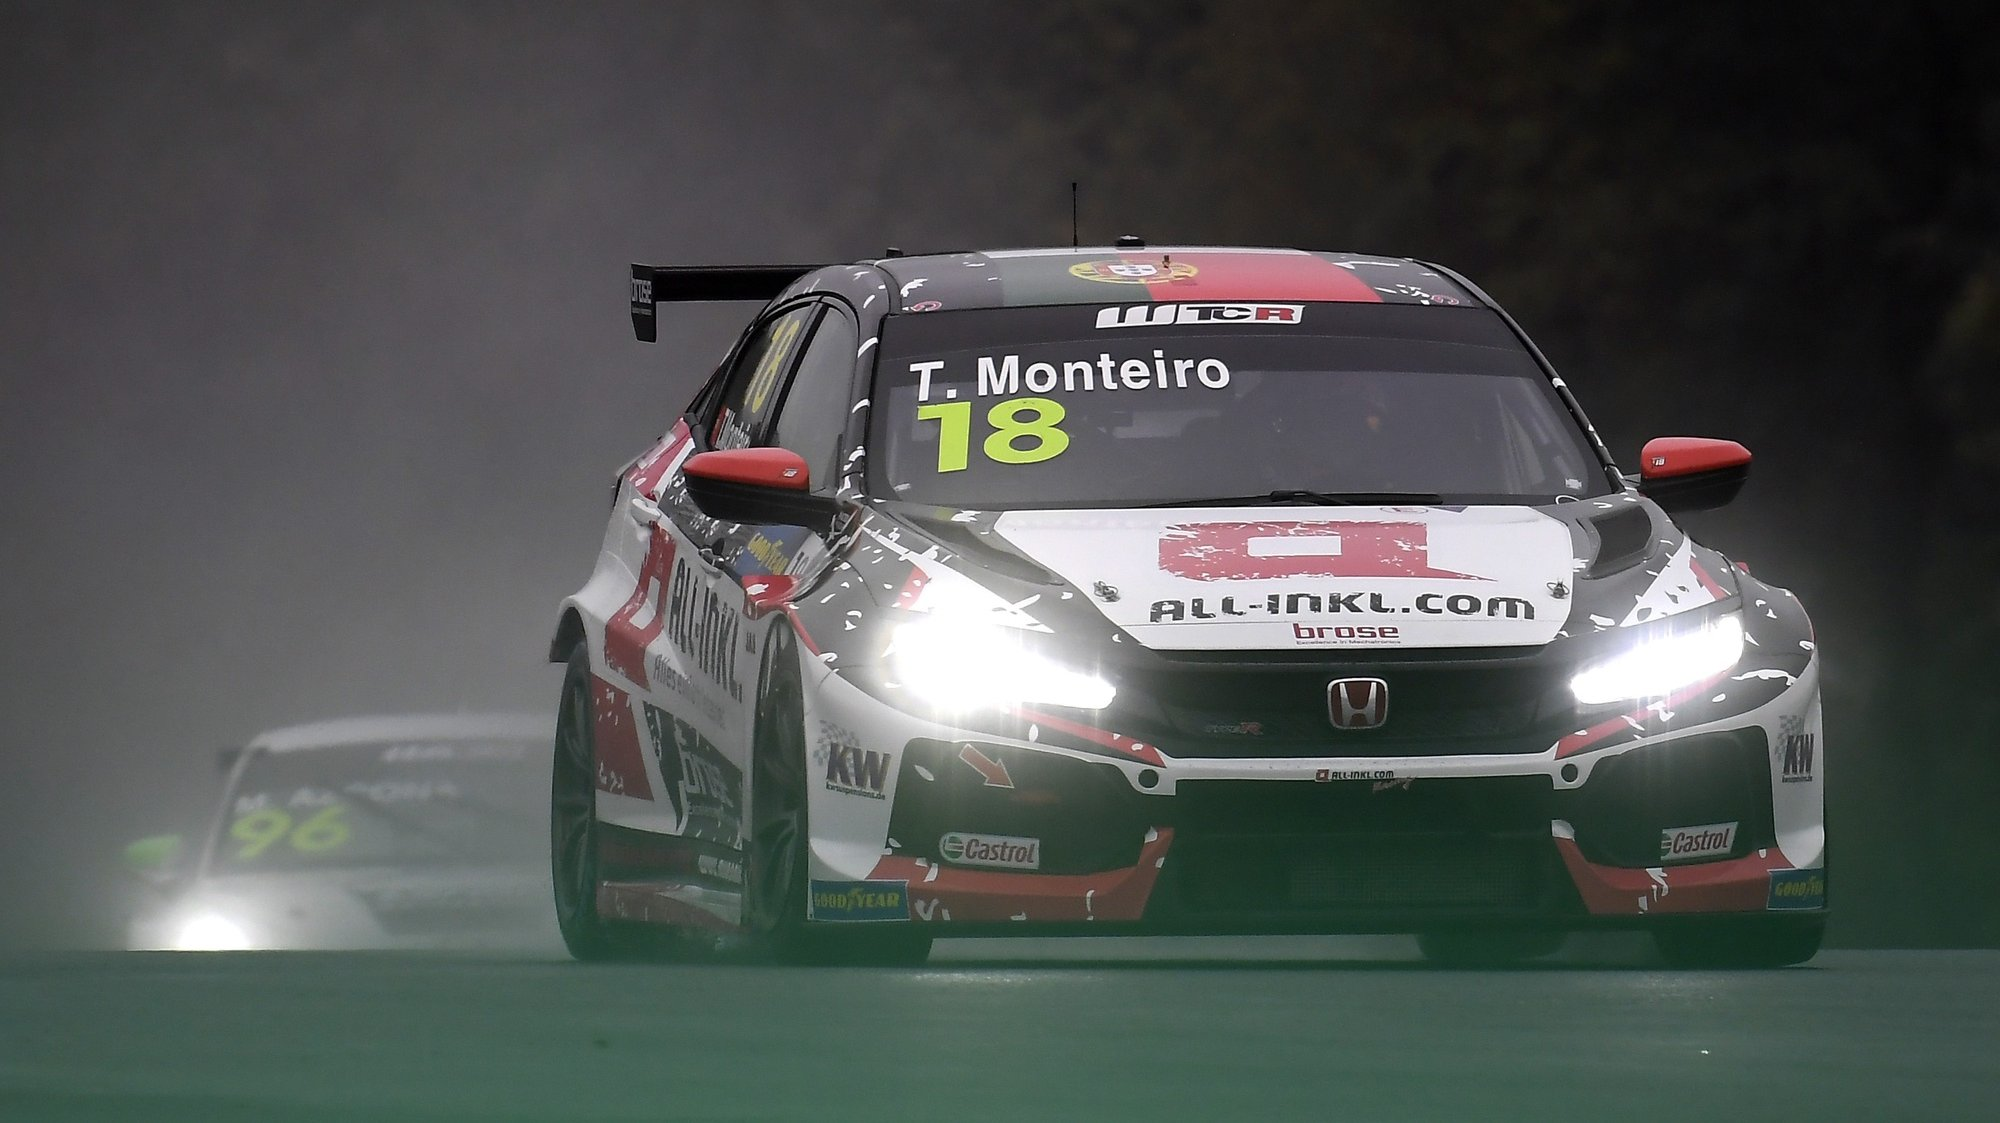 epa08752351 Portuguese Tiago Monteiro of ALL-INKL.DE Muennich Motorsport steers his Honda Civic TCR car during the first heat of Race of Hungary of World Touring Car Cup (WTCR) on the Hungaroring circuit in Mogyorod, Hungary, 17 October 2020.  EPA/Tamas Kovacs HUNGARY OUT